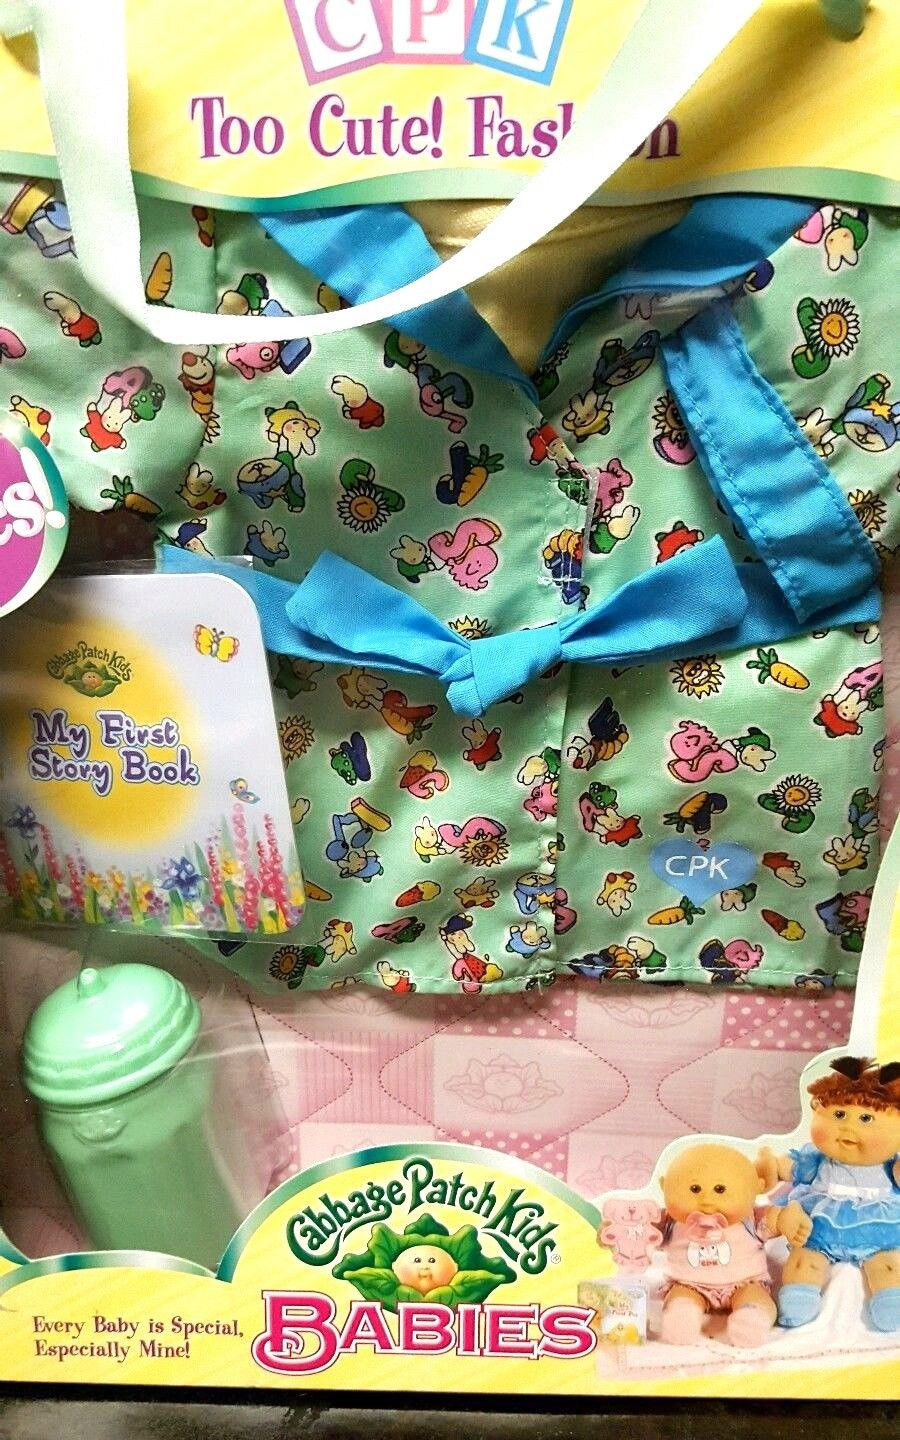 """Beautiful Cabbage Patch Kids Babies 14"""" Doll Clothes New Outfit Cabbage Patch Kids for Sale Of Marvelous 47 Pics Cabbage Patch Kids for Sale"""